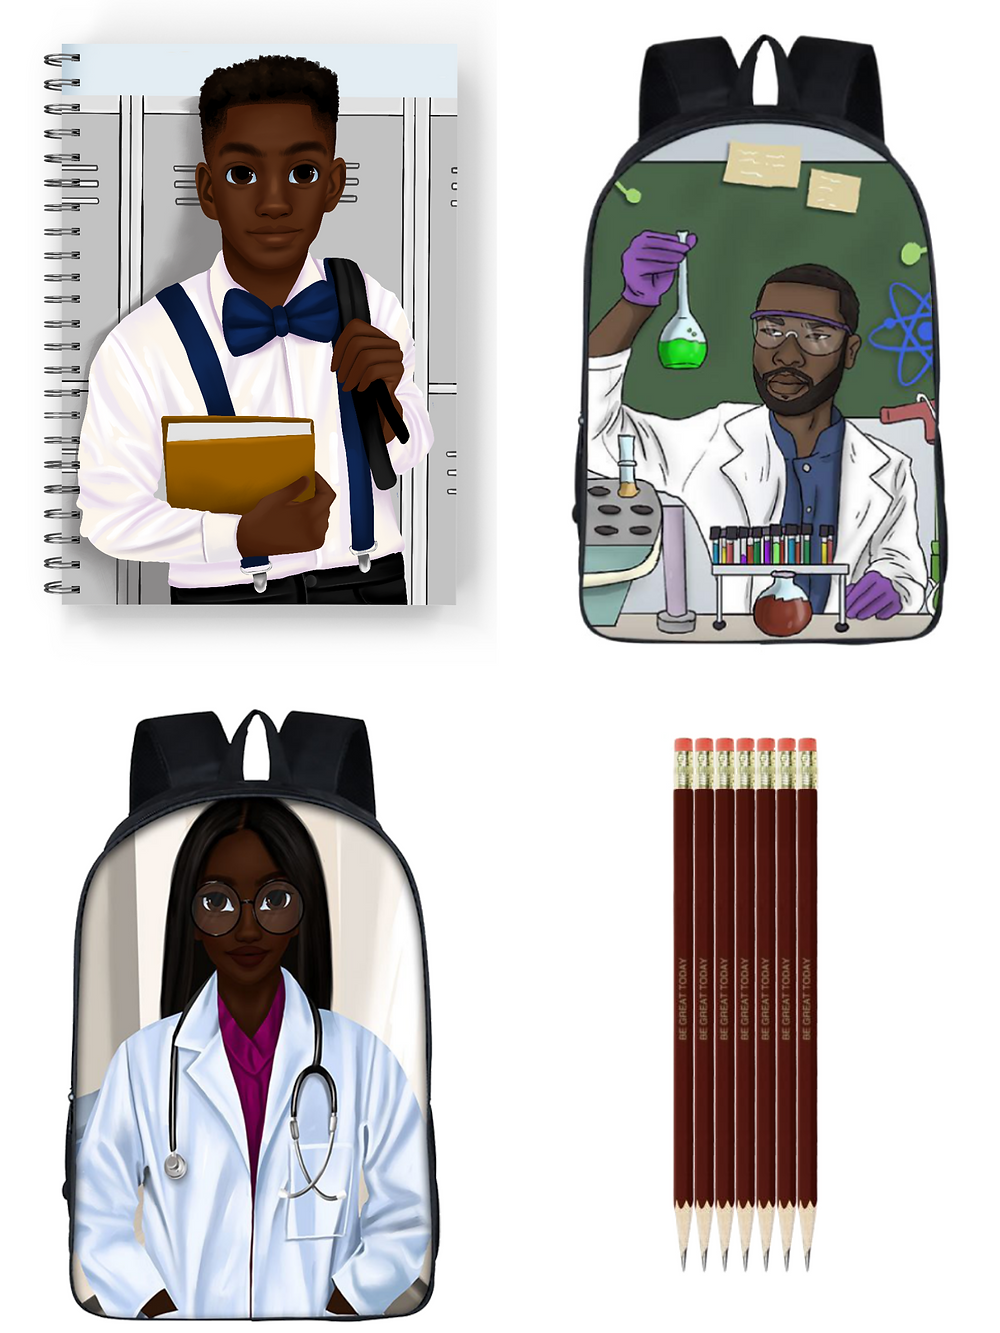 Minor Educated, Black-owned notebooks, penicls, backpacks